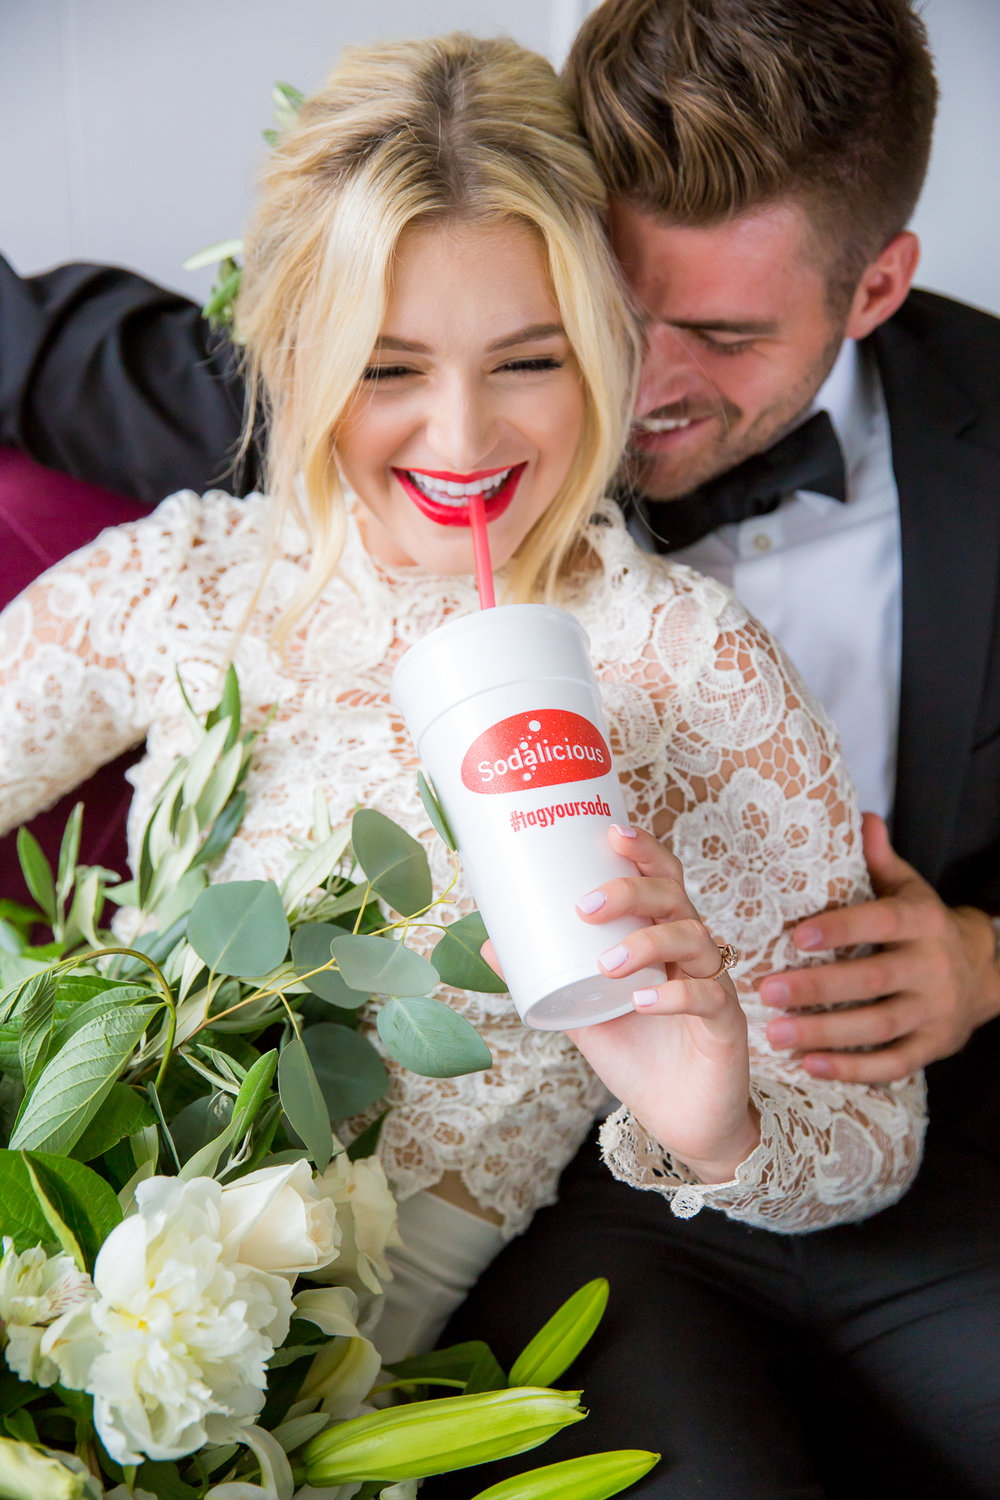 Soda Wedding (social)-54.jpg